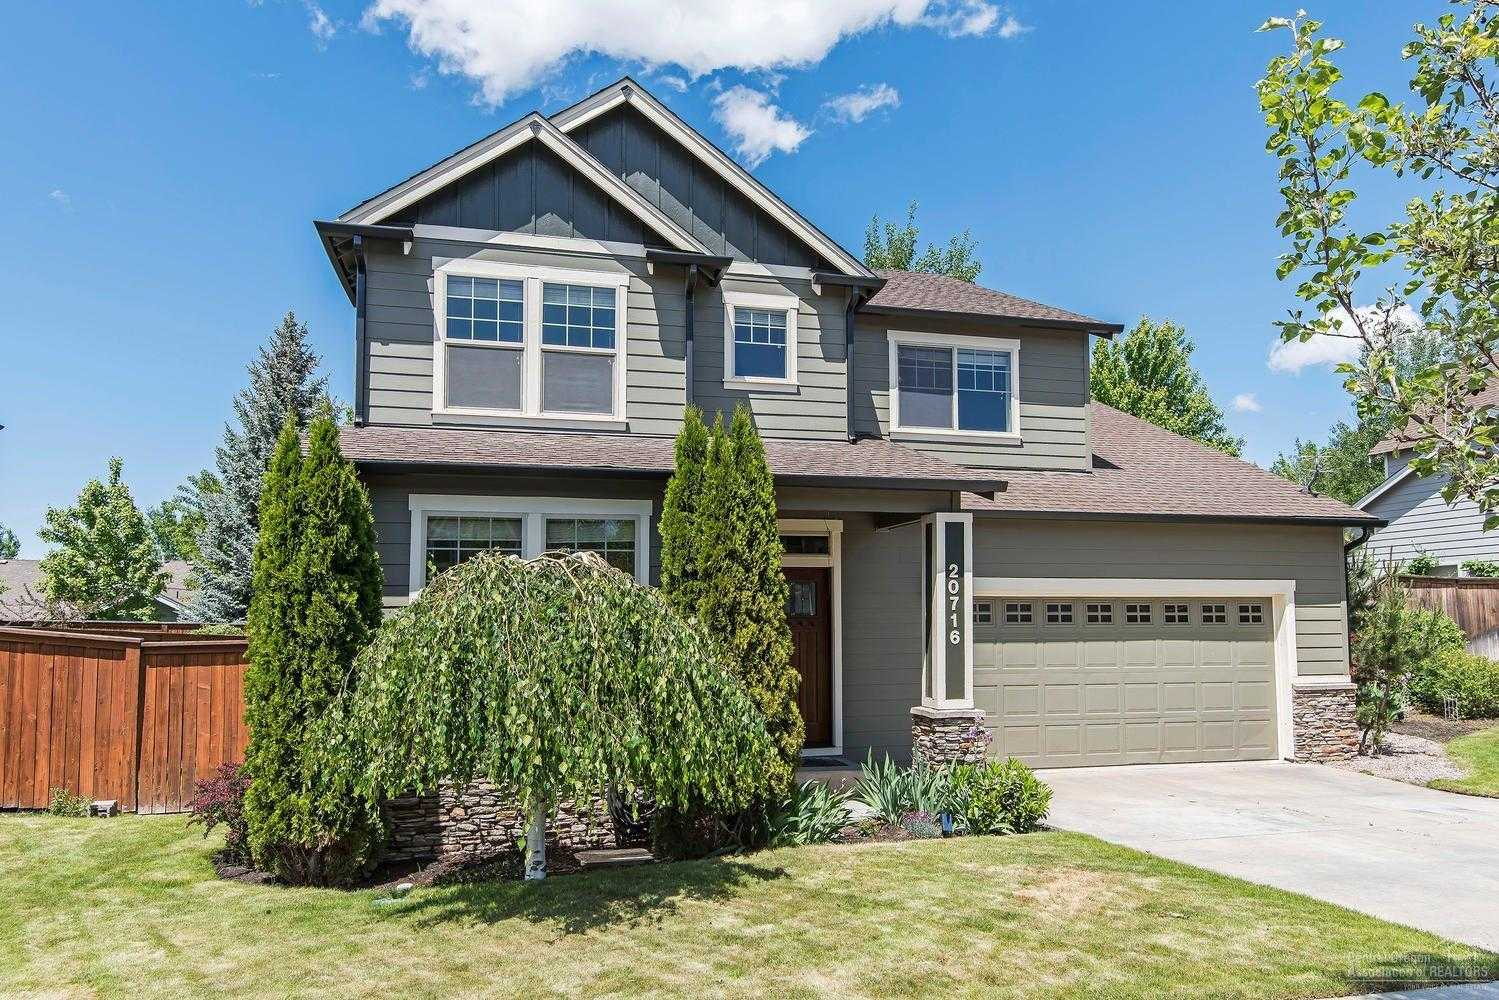 $436,500 - 3Br/3Ba -  for Sale in Bend